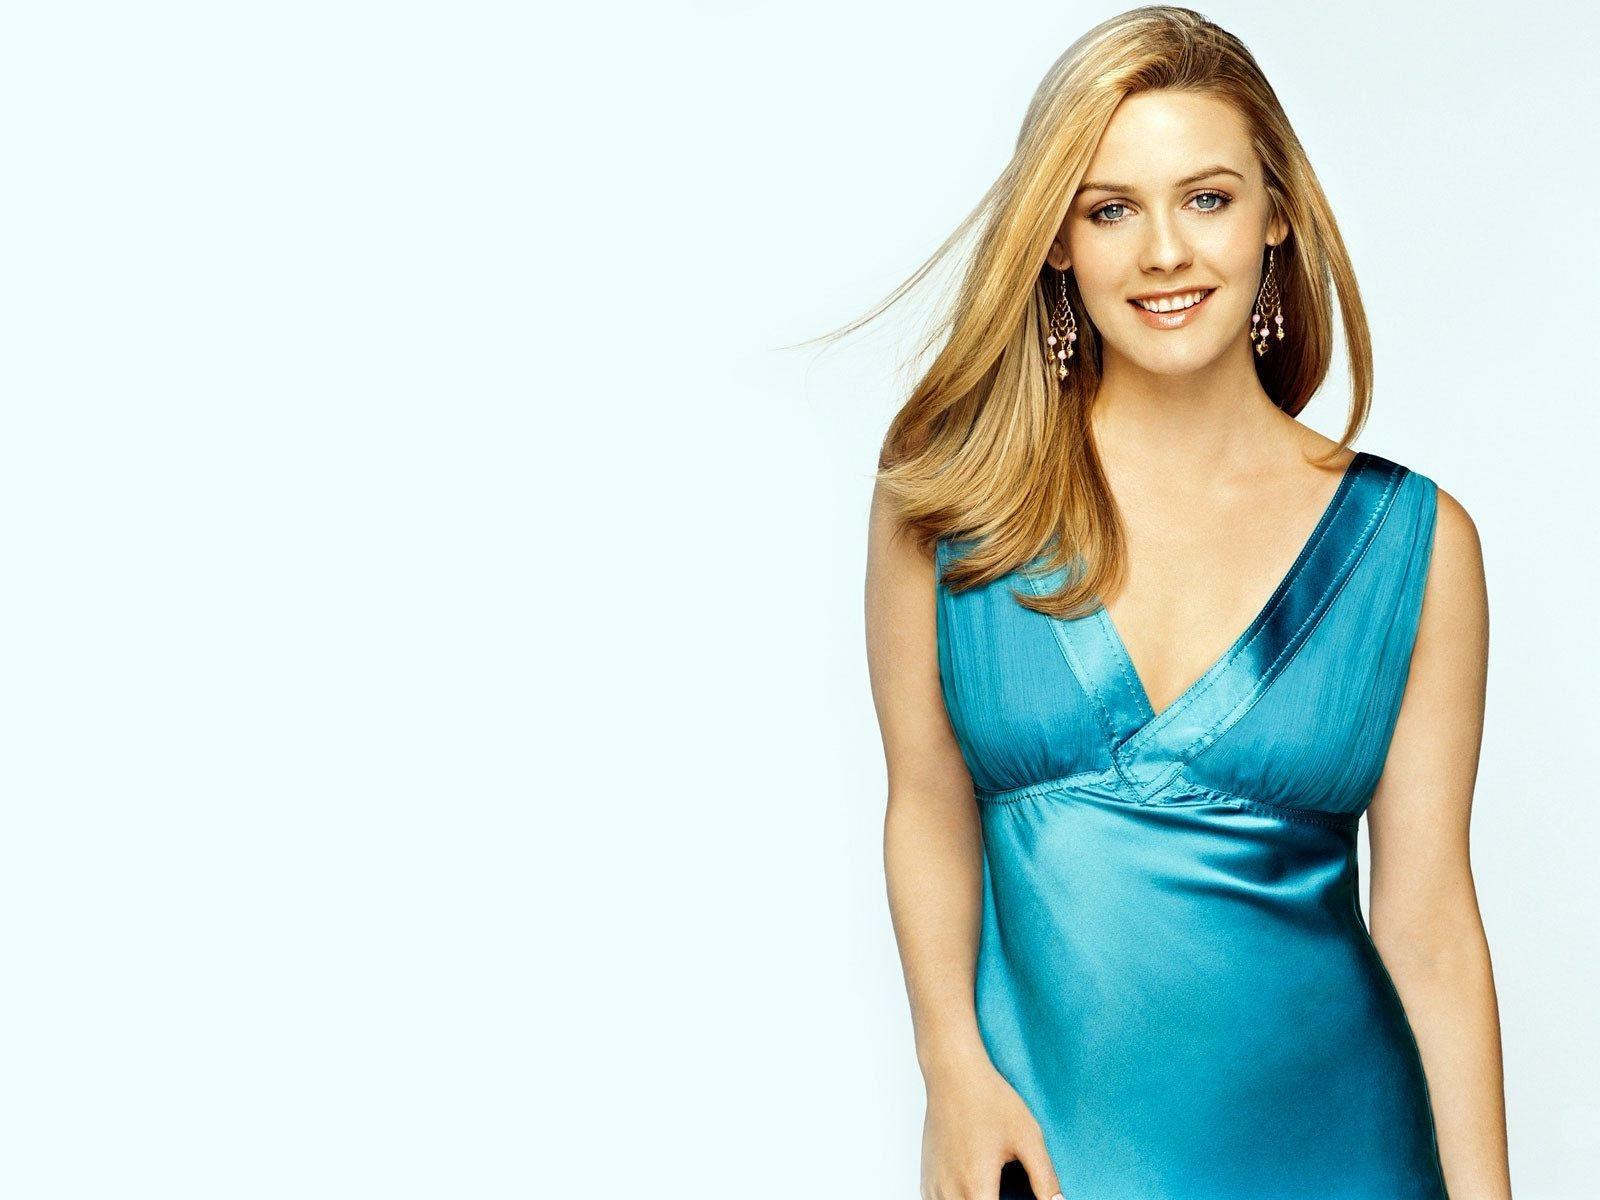 Alicia Silverstone Wallpapers Wallpaper Cave